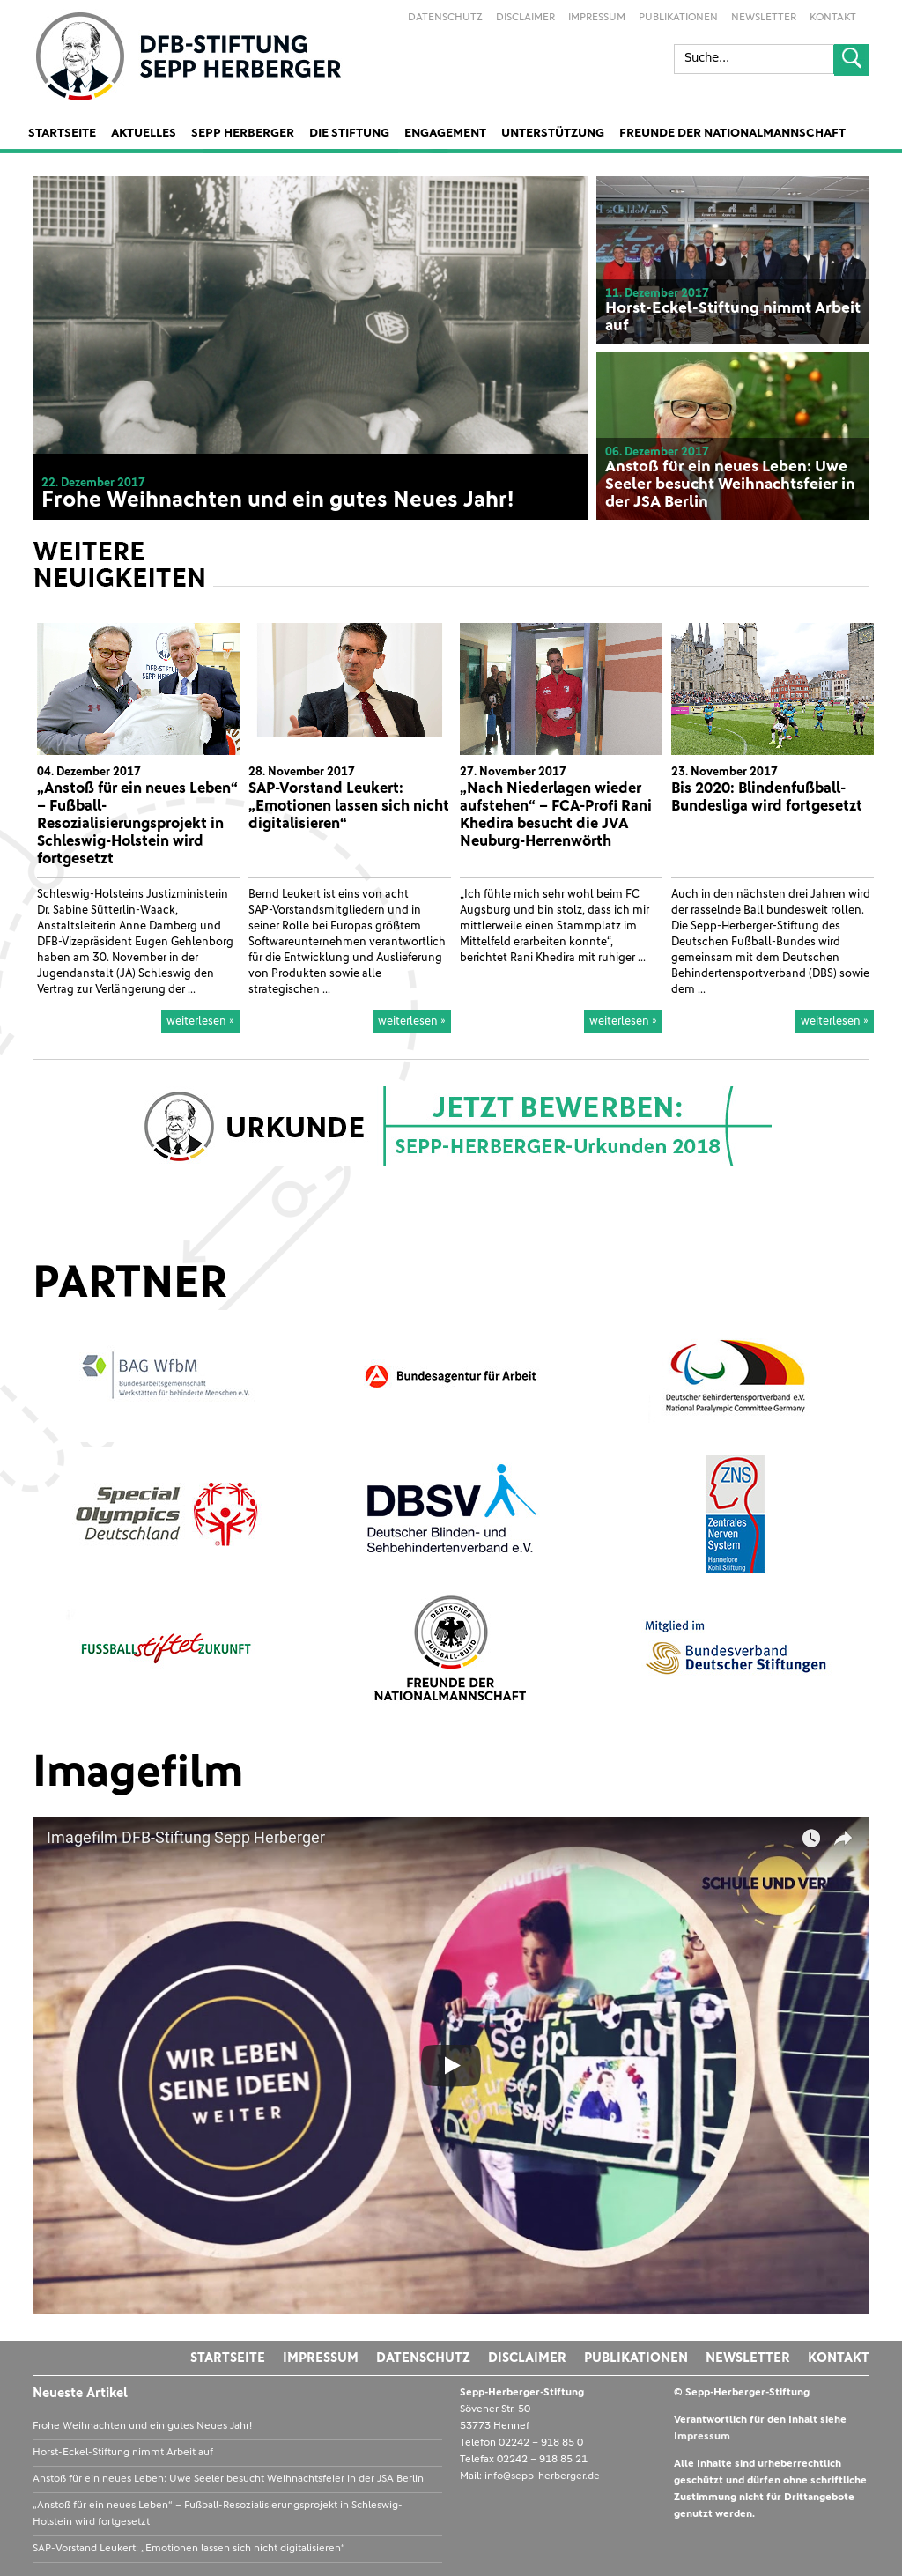 Dfb Stiftung Sepp Herberger Competitors Revenue And